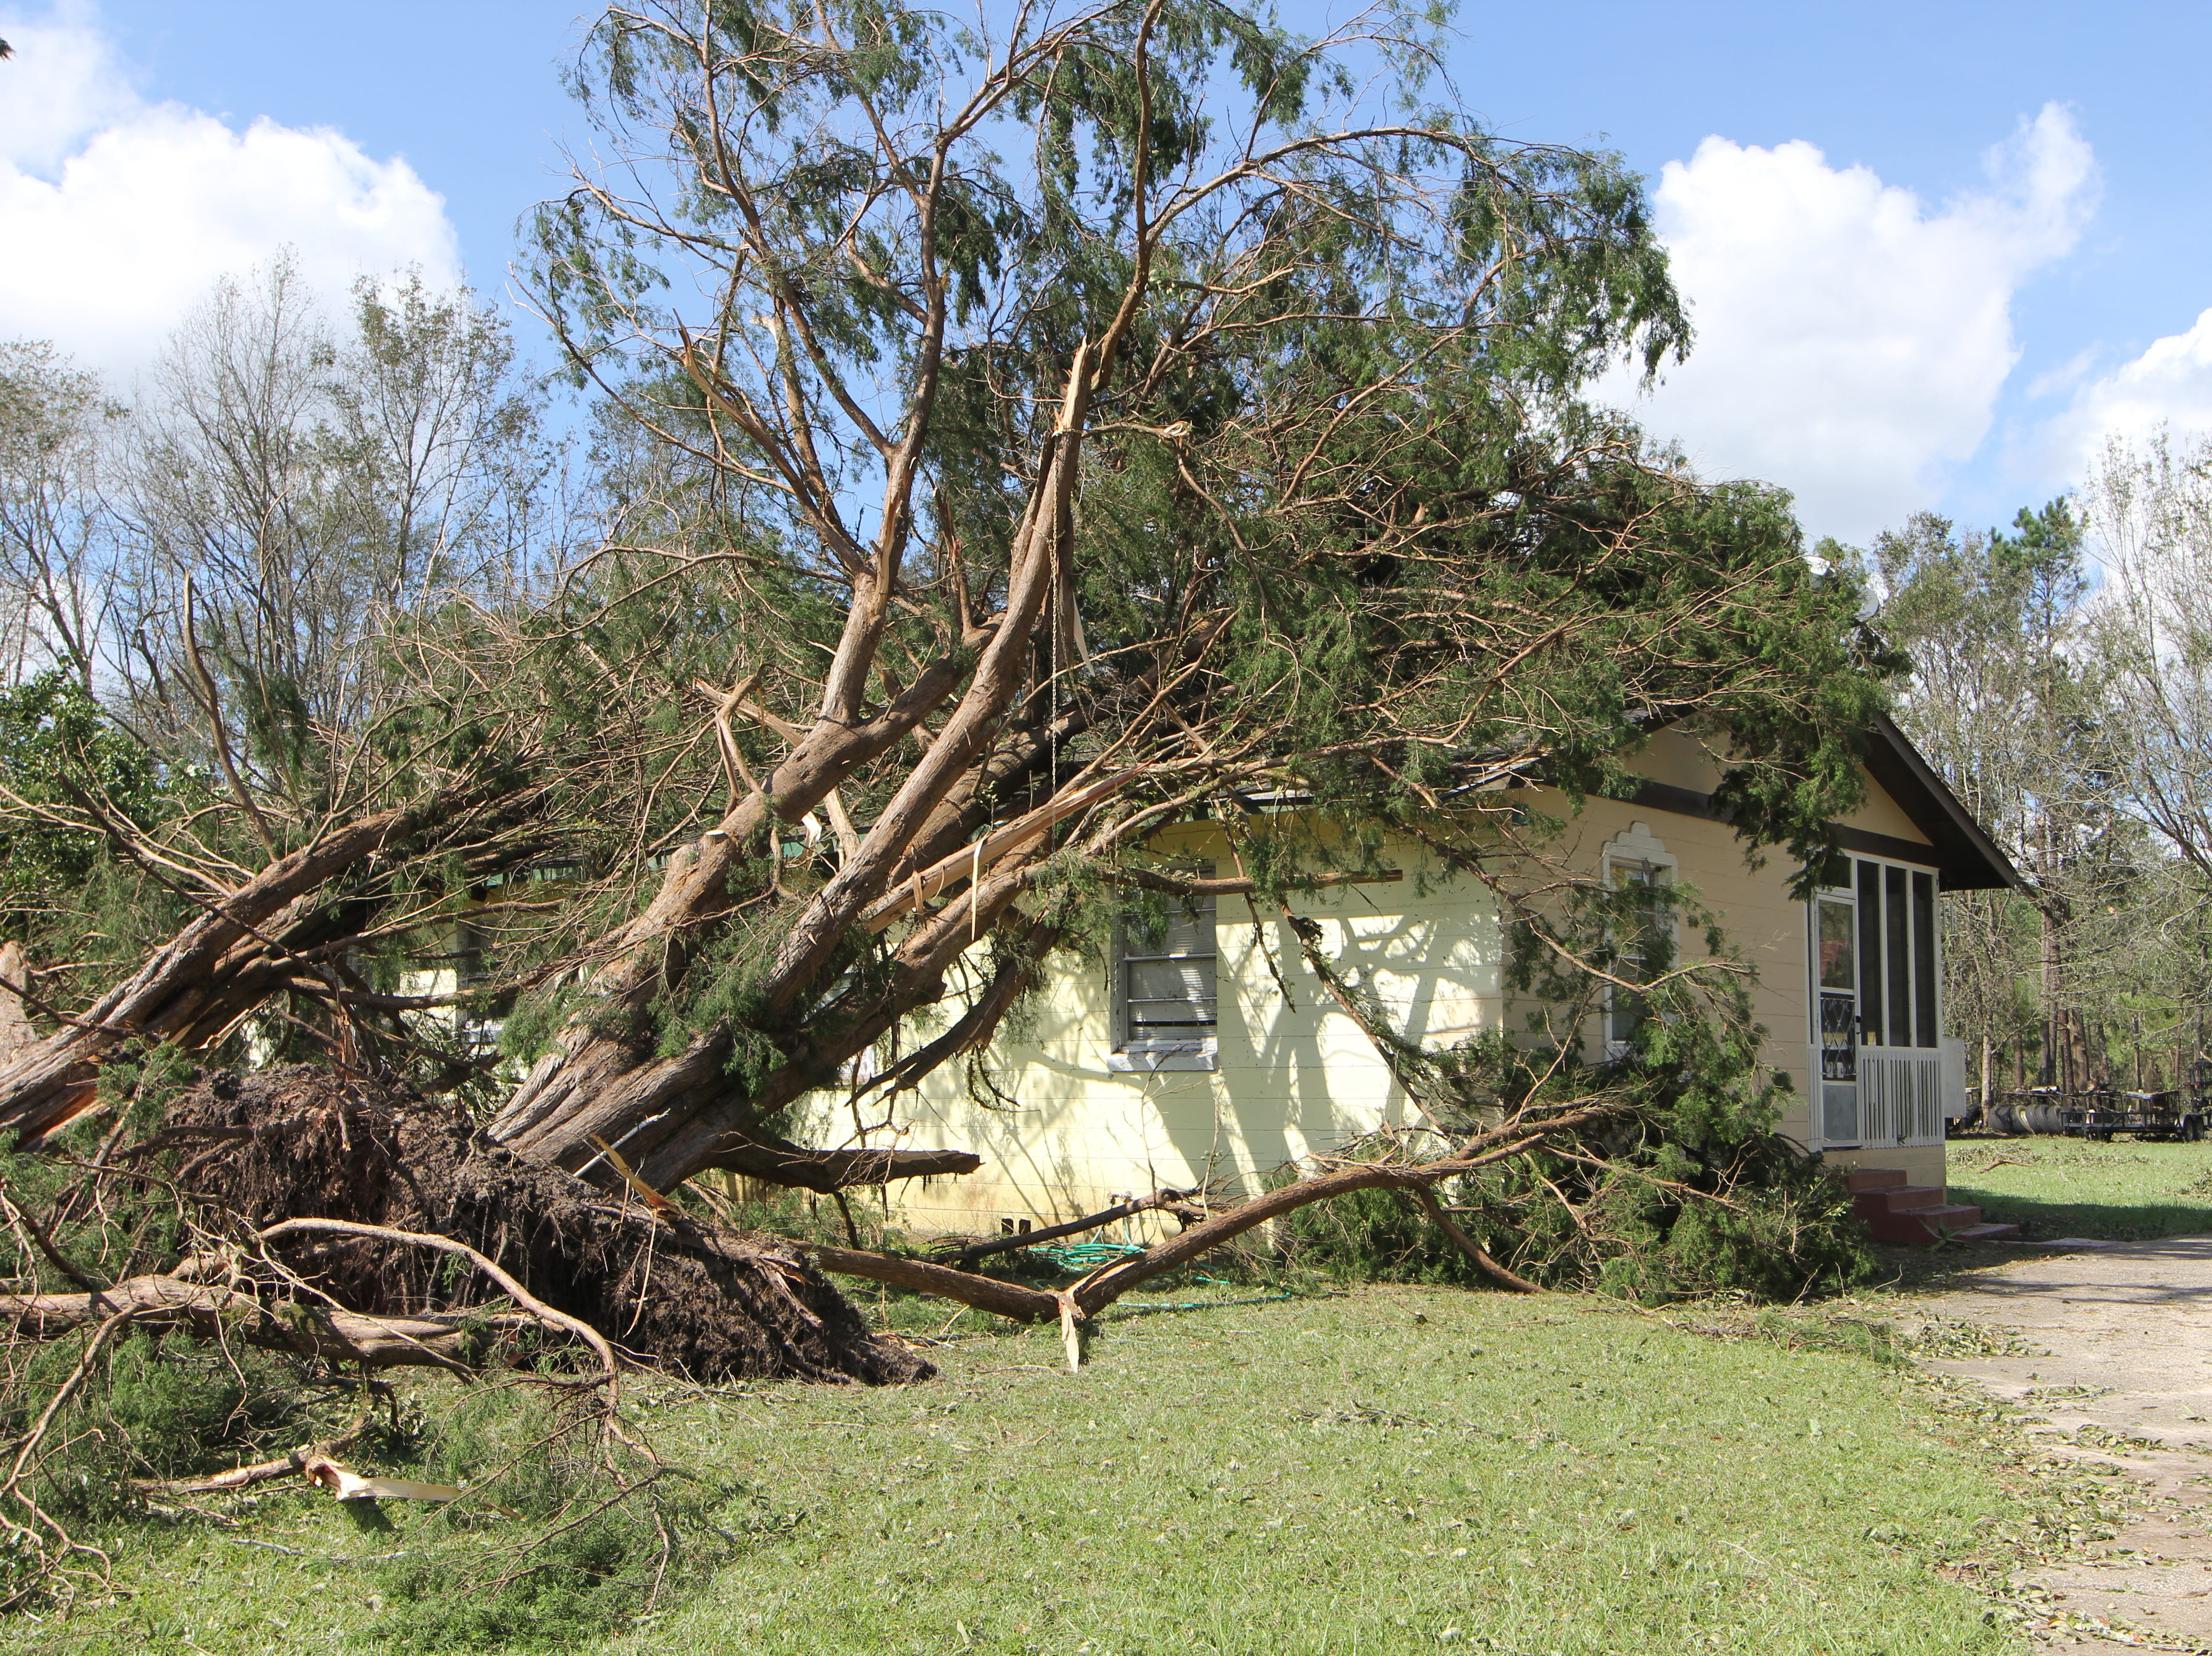 Trees fell on a home in Sawdust, Gadsden County, pictured Thursday, Oct. 11, 2018, following Hurricane Michael.